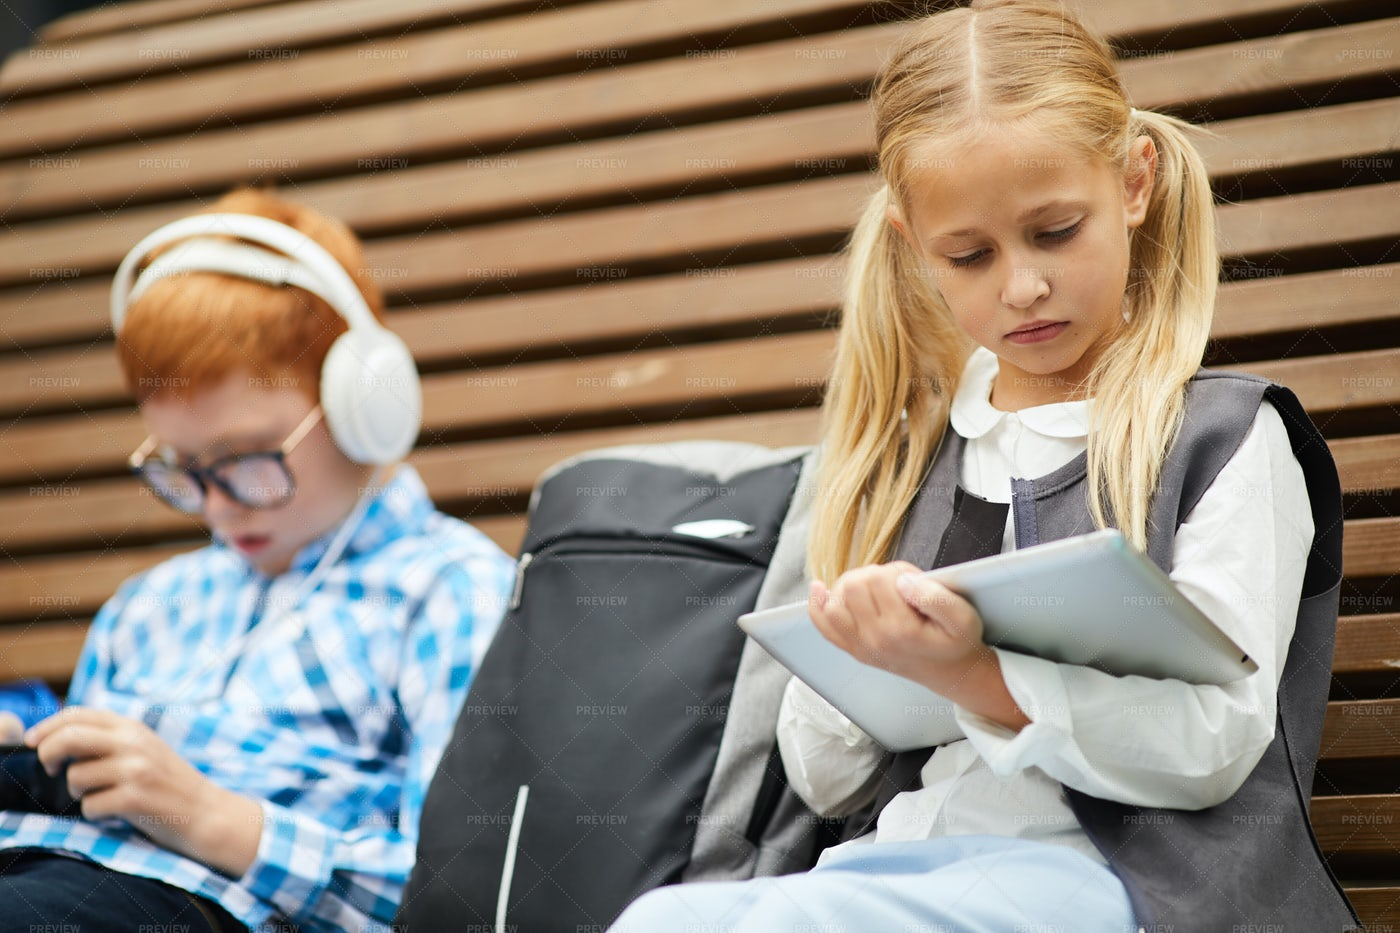 Schoolgirl Studying With Tablet PC: Stock Photos